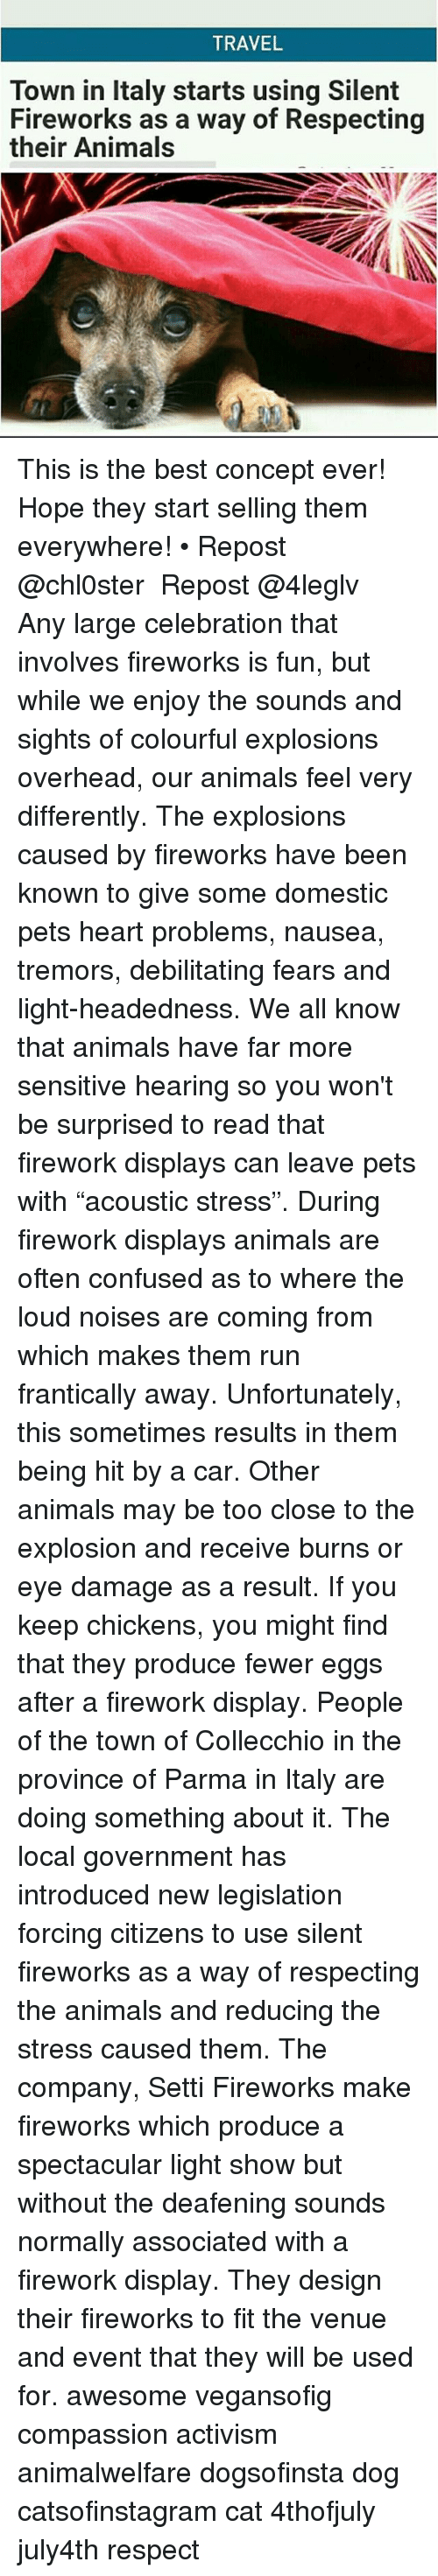 """Animals, Cars, and Cats: TRAVEL  Town in Italy starts using Silent  Fireworks as a way of Respecting  their Animal This is the best concept ever! Hope they start selling them everywhere! • Repost @chl0ster ・・・ Repost @4leglv ・・・ Any large celebration that involves fireworks is fun, but while we enjoy the sounds and sights of colourful explosions overhead, our animals feel very differently. The explosions caused by fireworks have been known to give some domestic pets heart problems, nausea, tremors, debilitating fears and light-headedness. We all know that animals have far more sensitive hearing so you won't be surprised to read that firework displays can leave pets with """"acoustic stress"""". During firework displays animals are often confused as to where the loud noises are coming from which makes them run frantically away. Unfortunately, this sometimes results in them being hit by a car. Other animals may be too close to the explosion and receive burns or eye damage as a result. If you keep chickens, you might find that they produce fewer eggs after a firework display. People of the town of Collecchio in the province of Parma in Italy are doing something about it. The local government has introduced new legislation forcing citizens to use silent fireworks as a way of respecting the animals and reducing the stress caused them. The company, Setti Fireworks make fireworks which produce a spectacular light show but without the deafening sounds normally associated with a firework display. They design their fireworks to fit the venue and event that they will be used for. awesome vegansofig compassion activism animalwelfare dogsofinsta dog catsofinstagram cat 4thofjuly july4th respect"""